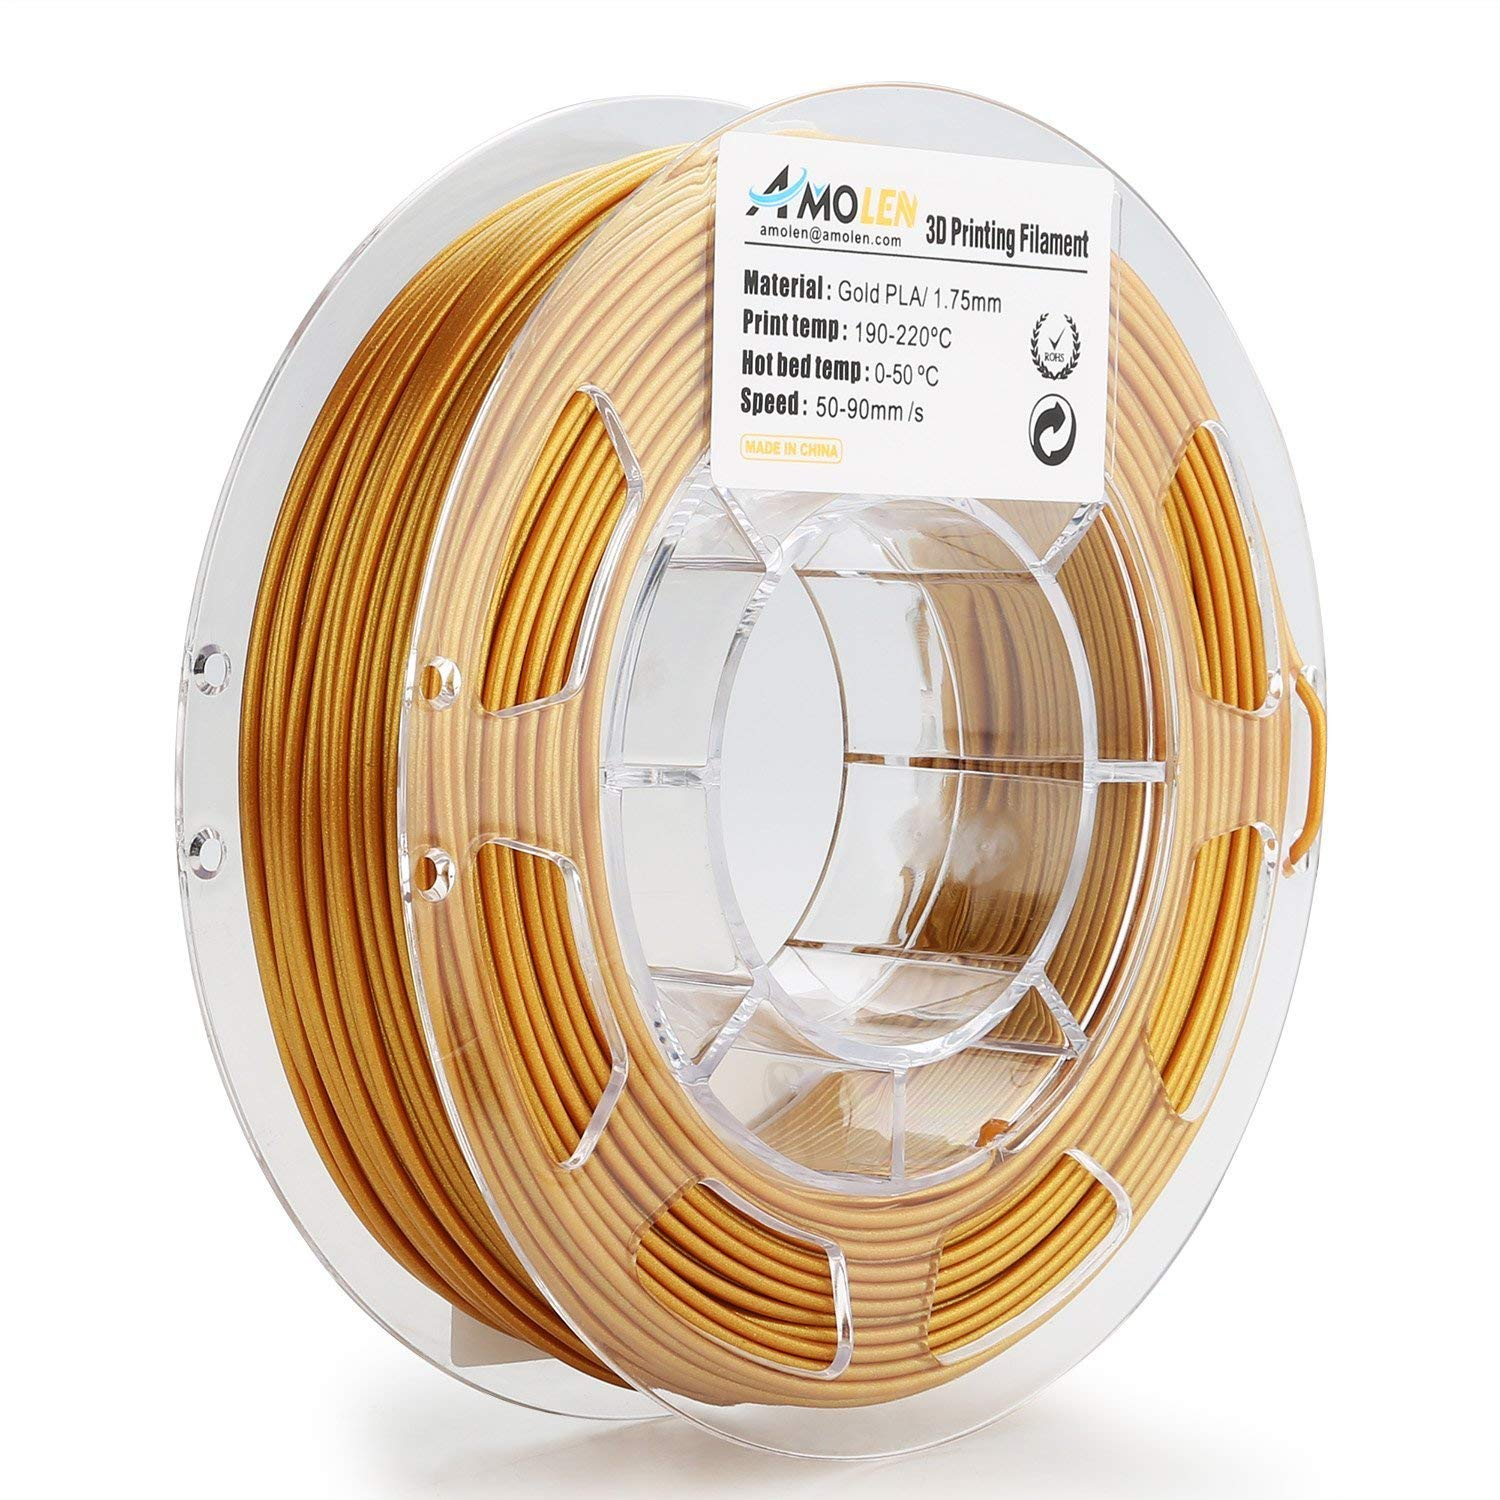 AMOLEN 3D Printer Filament, Real Gold PLA  Filament  1.75mm +/-  0.03  mm, 0.44LBS(200G), includes Sample Shining Black Filament. Real Gold PLA Filament 1.75mm +/- 0.03 mm